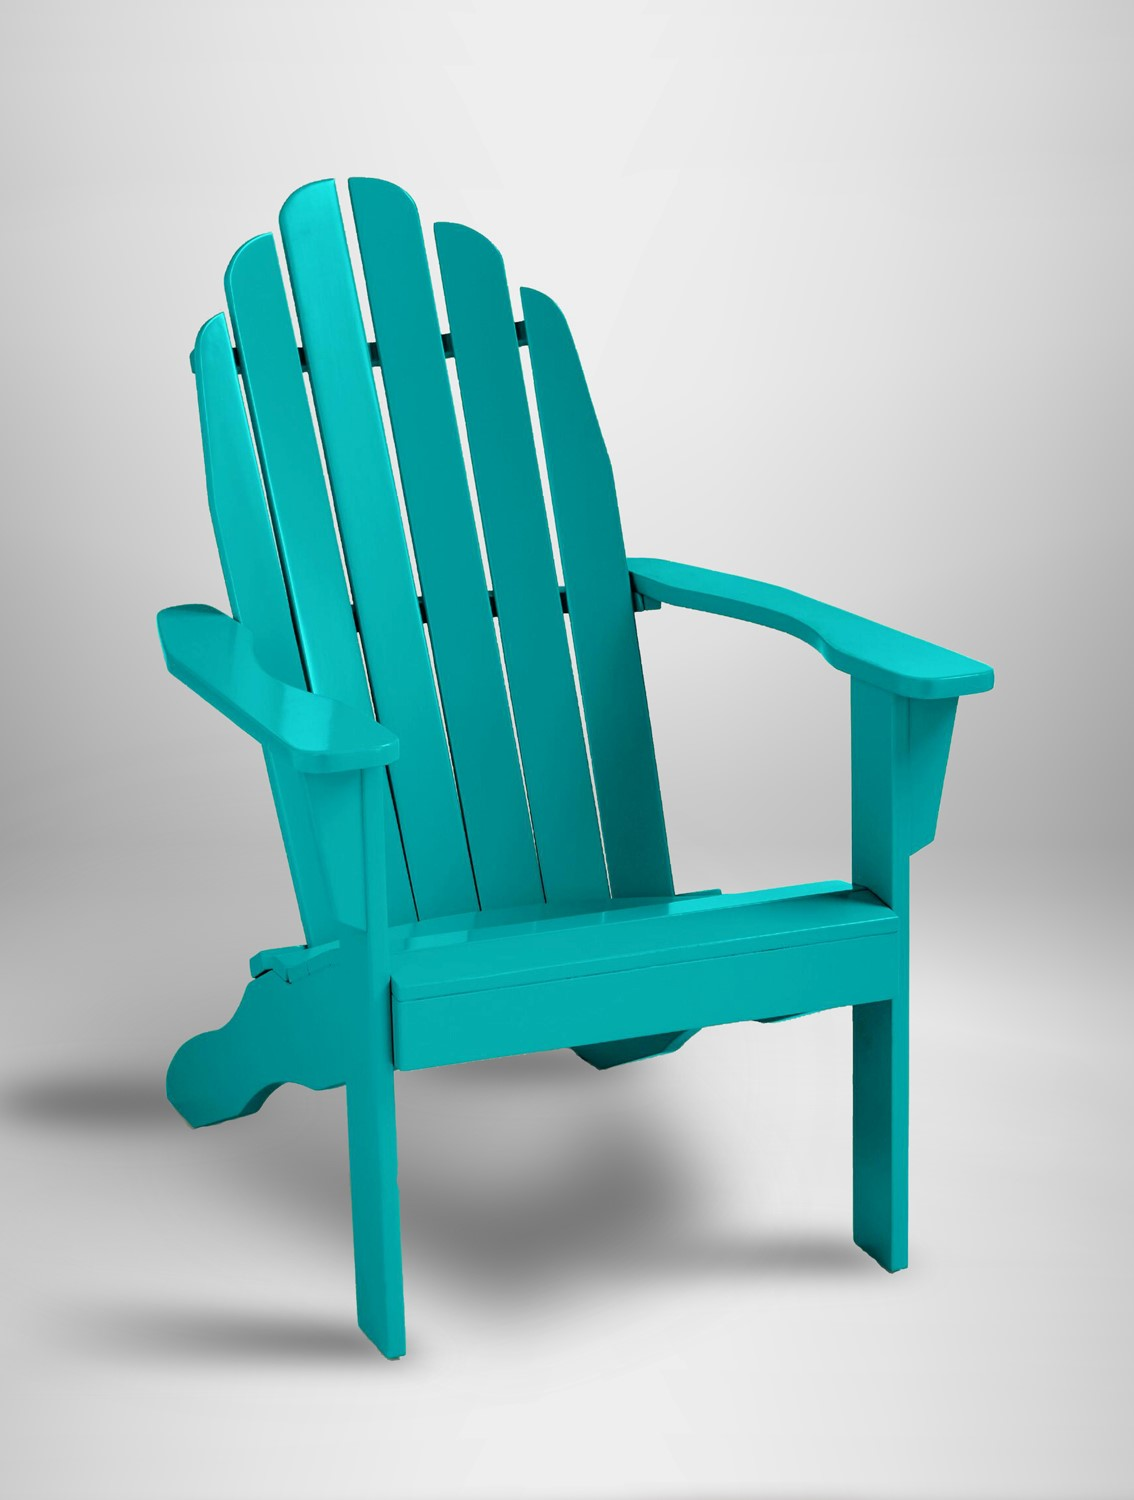 Teal Adirondack Chairs Adirondack Chair Teal West Coast Event Productions Inc